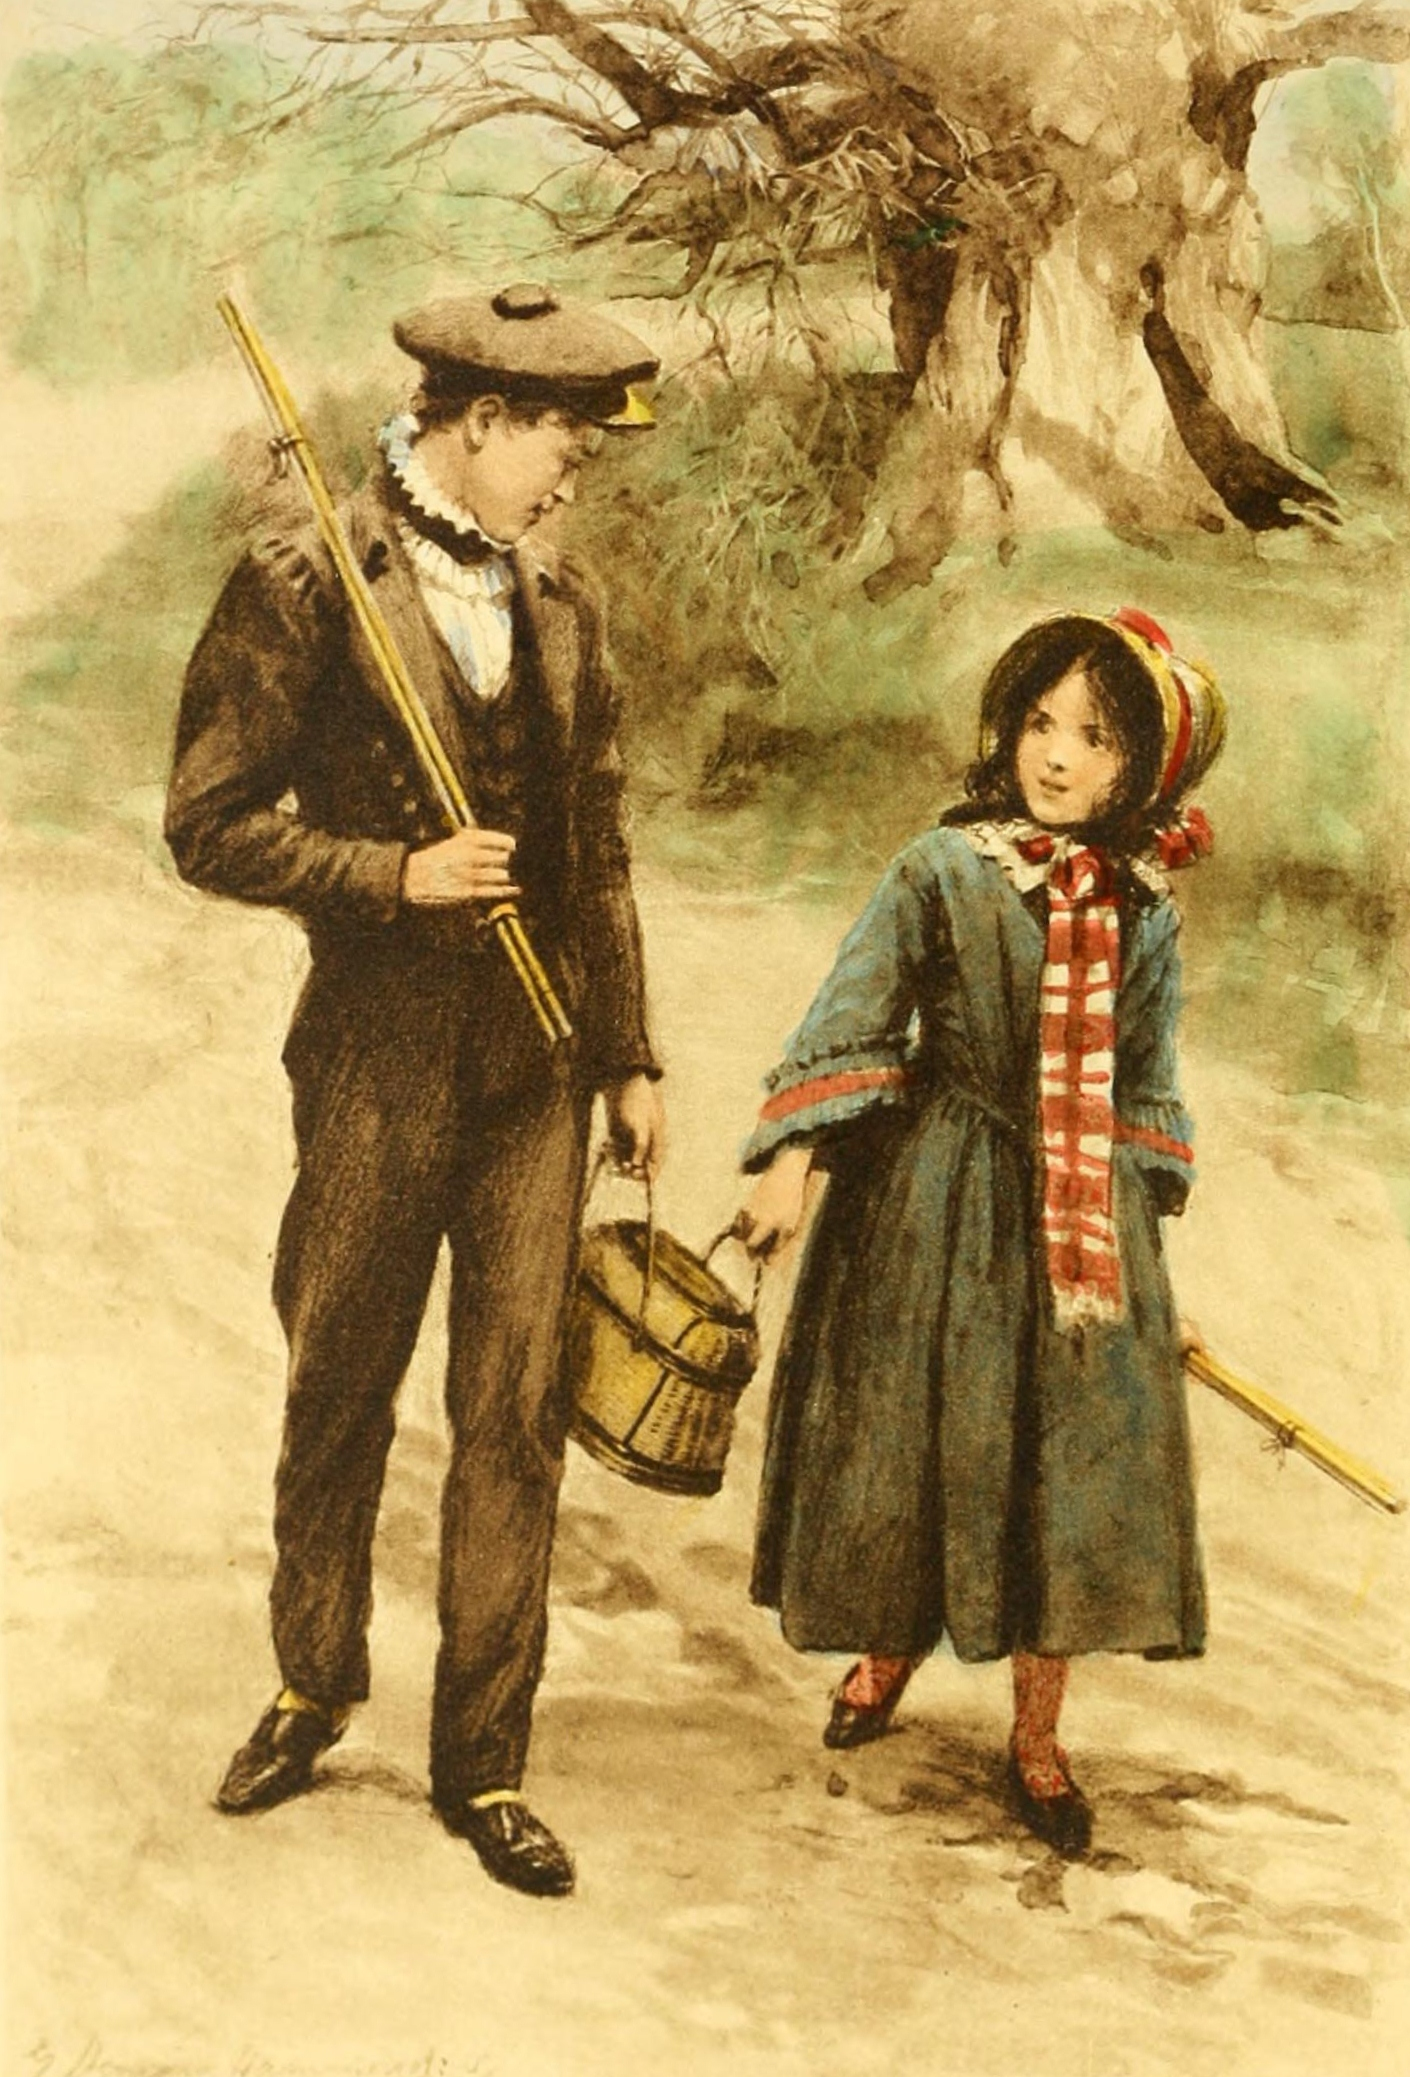 http://upload.wikimedia.org/wikipedia/commons/1/12/Tom_and_Maggie.jpg